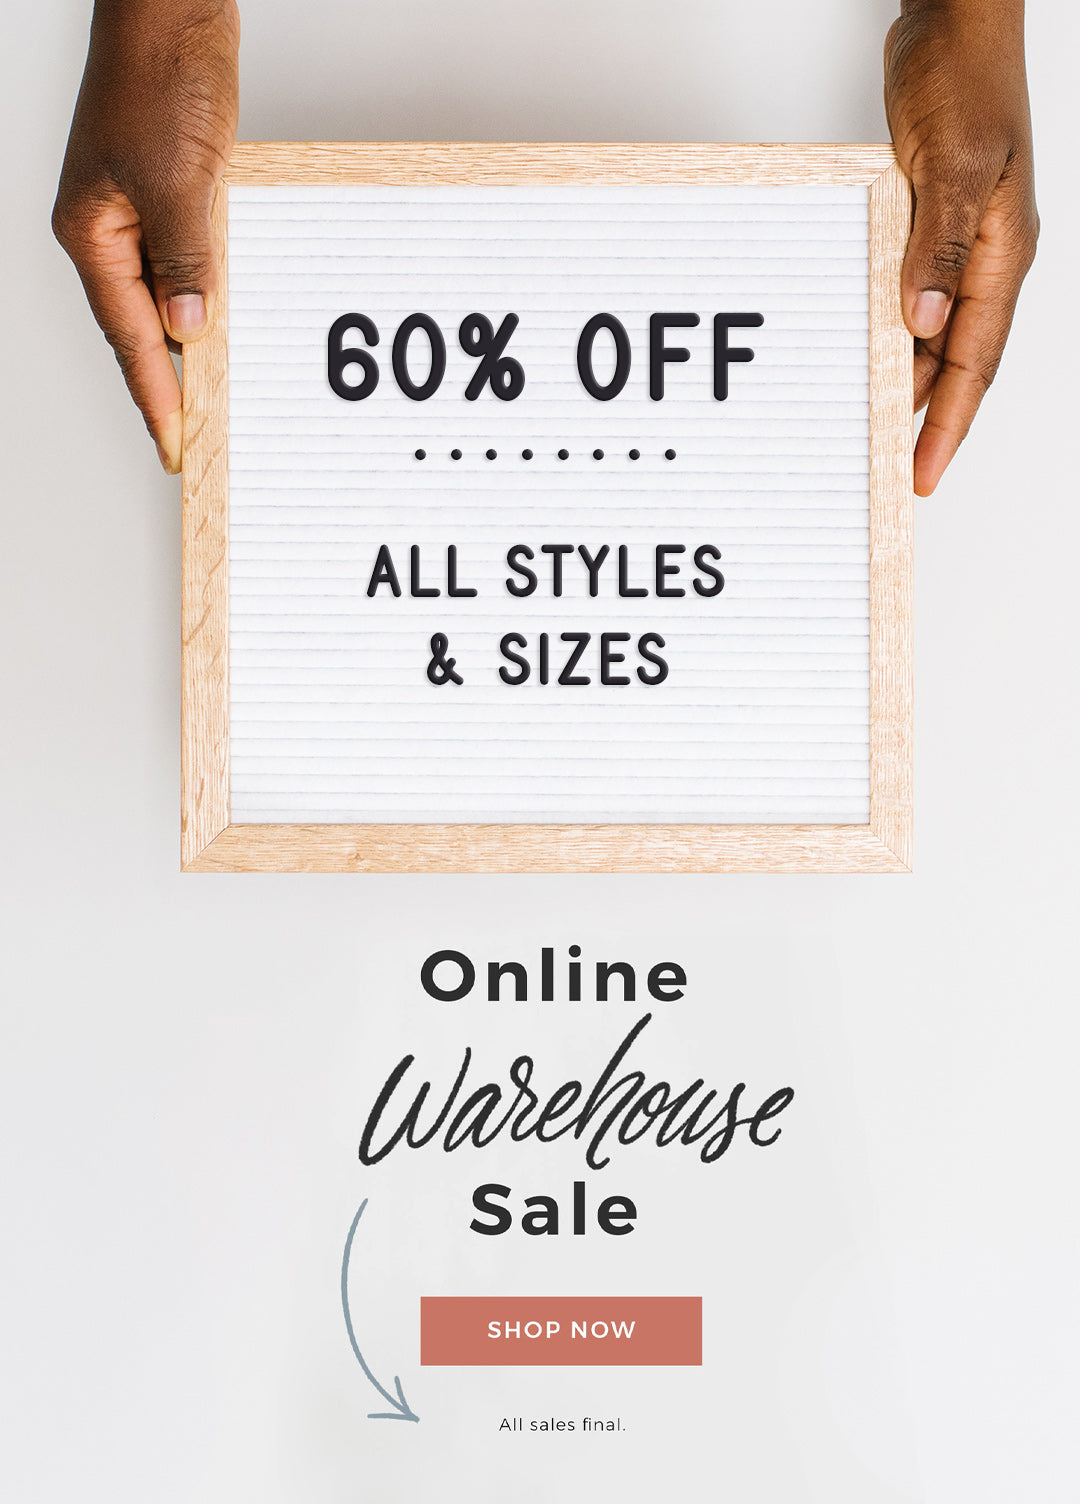 Online Warehouse Sale by Letterfolk